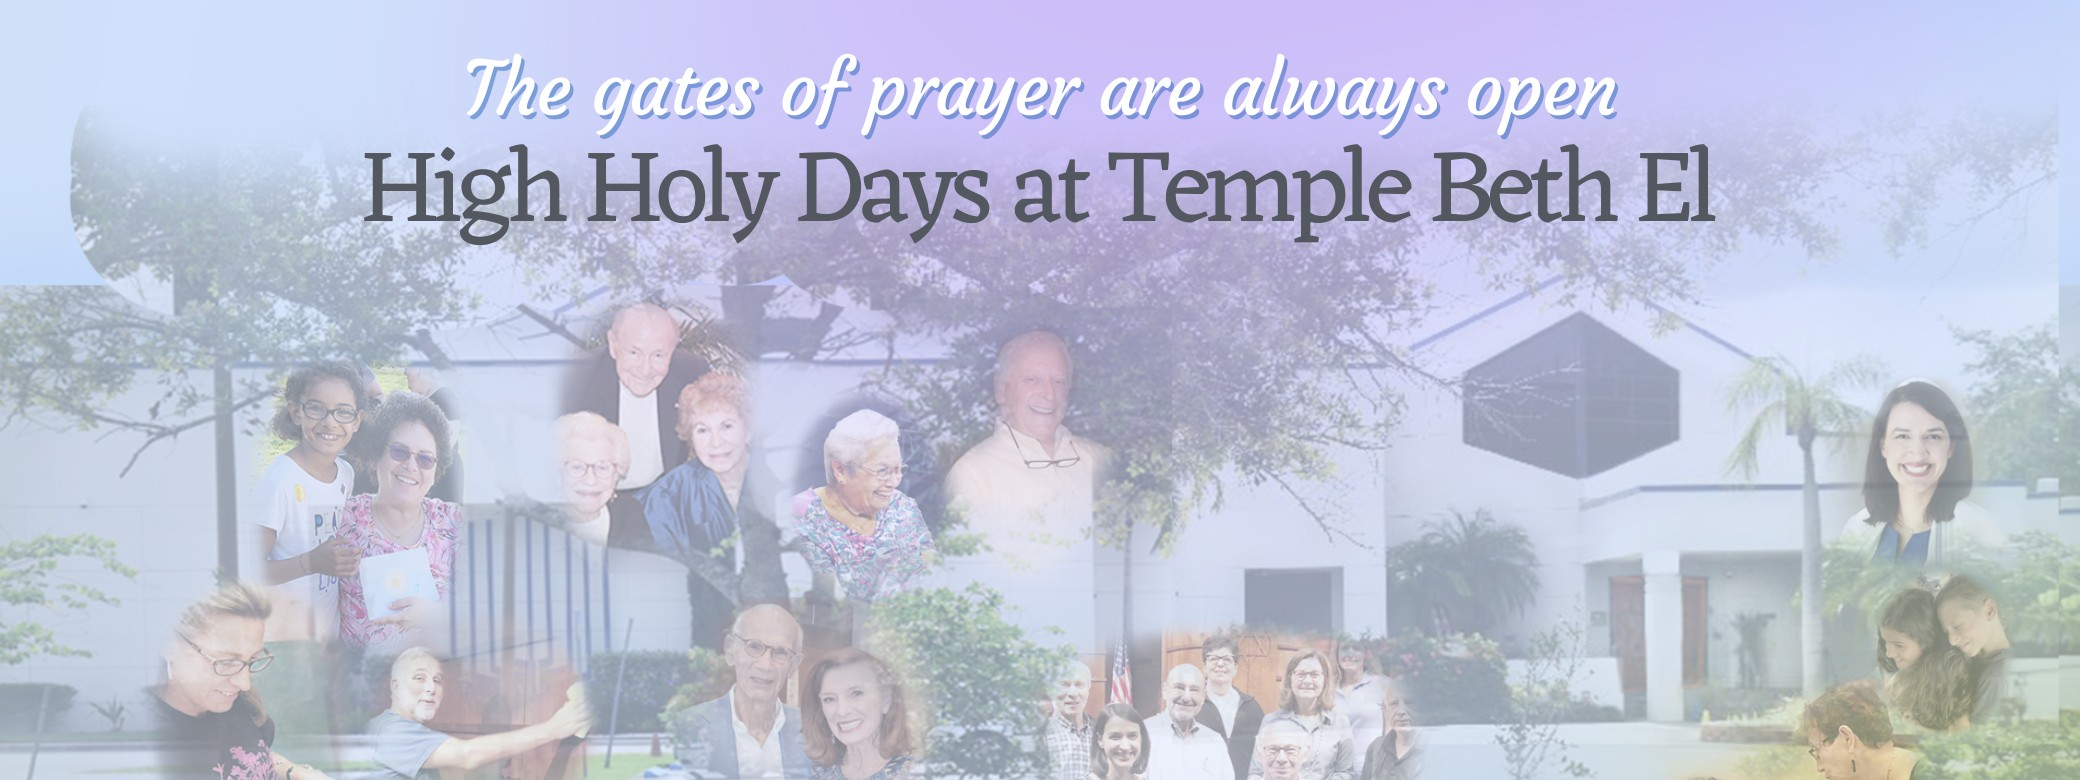 """<a href=""""https://www.templebethel.com/high-holy-days-2021.html""""                                     target="""""""">                                                                 <span class=""""slider_title"""">                                     August 28th-September 28th                                </span>                                                                 </a>                                                                                                                                                                                      <a href=""""https://www.templebethel.com/high-holy-days-2021.html"""" class=""""slider_link""""                             target="""""""">                             More information                            </a>"""